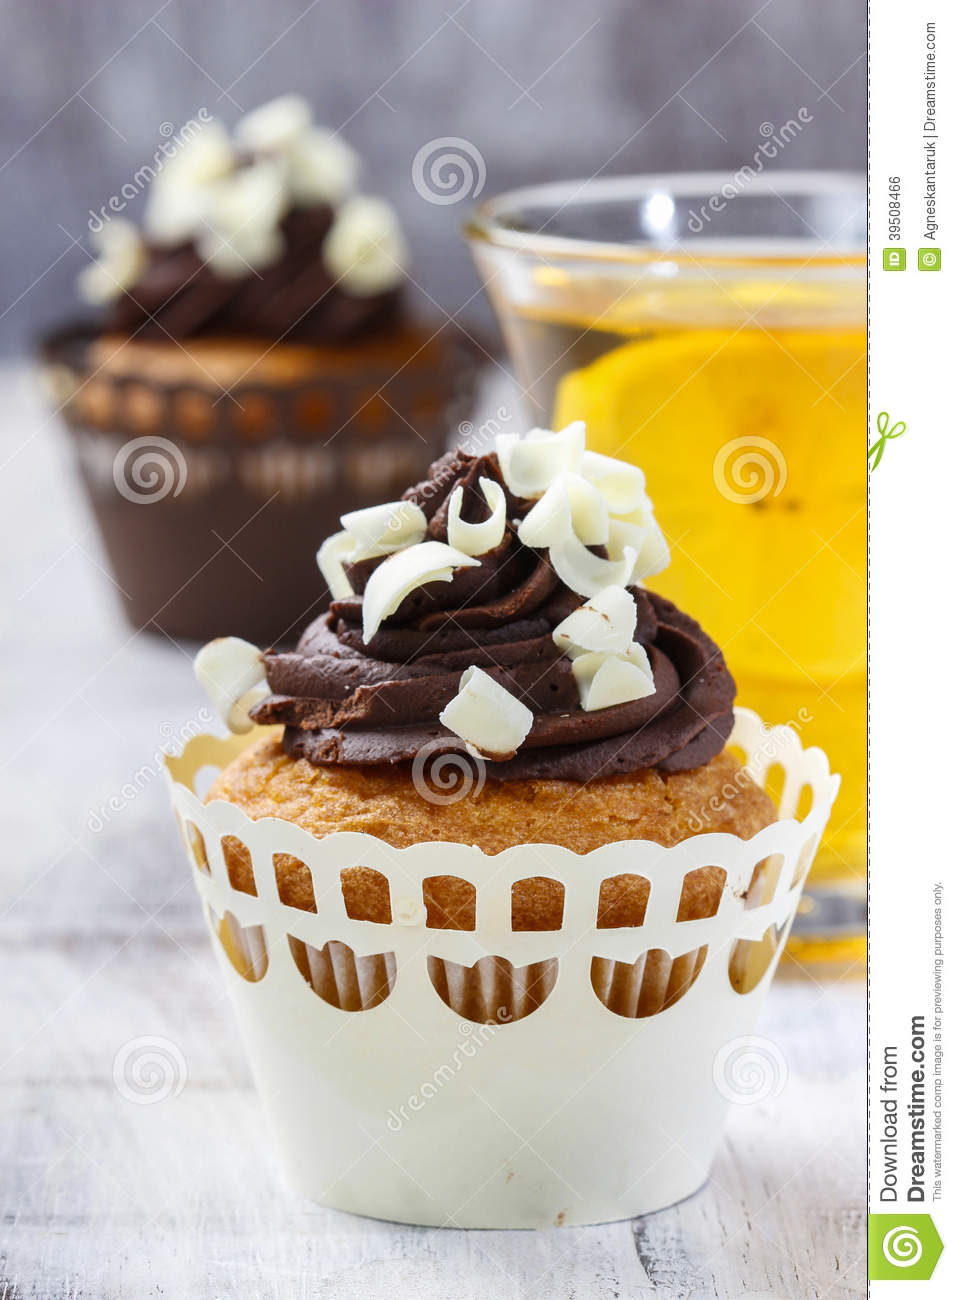 Fancy chocolate cupcakes on wooden table